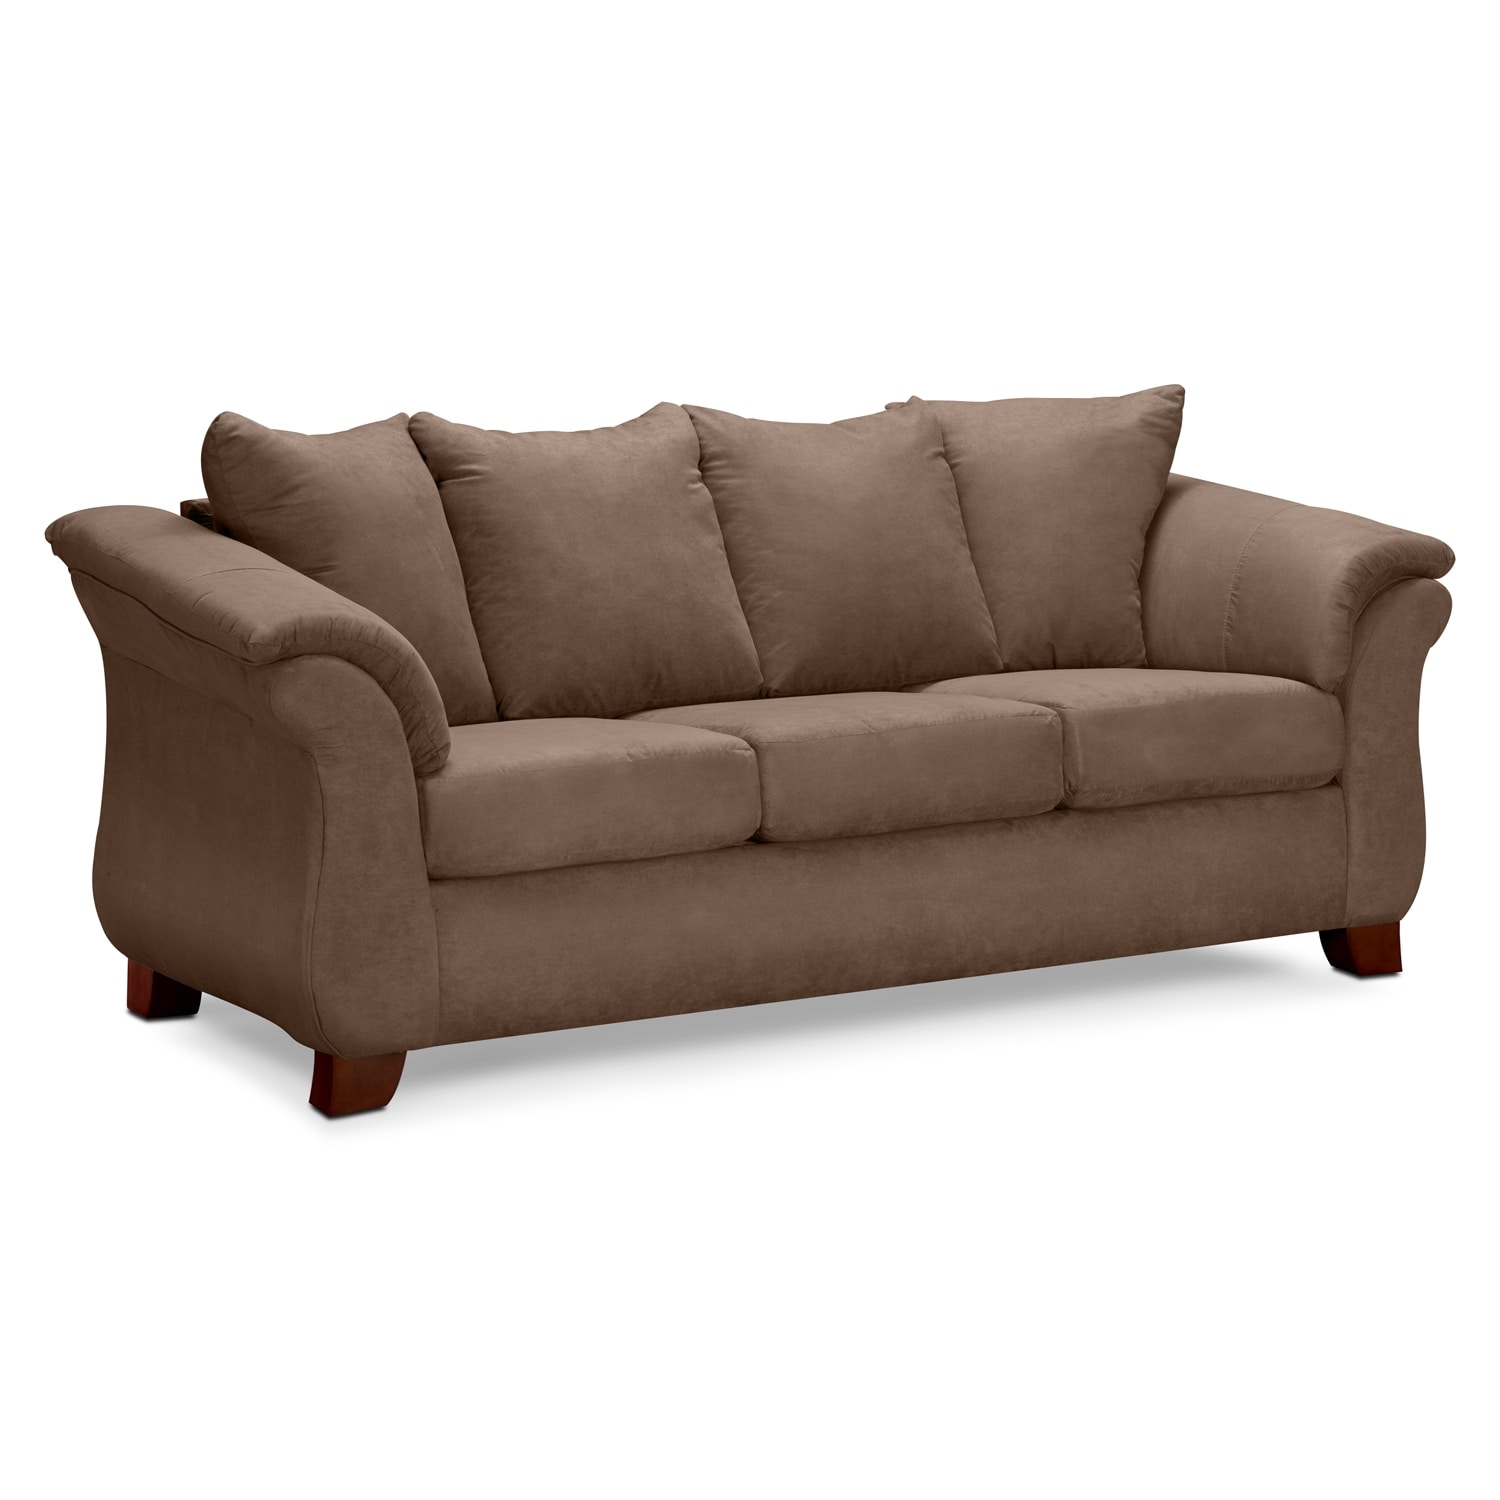 adrian taupe sofa value city furniture